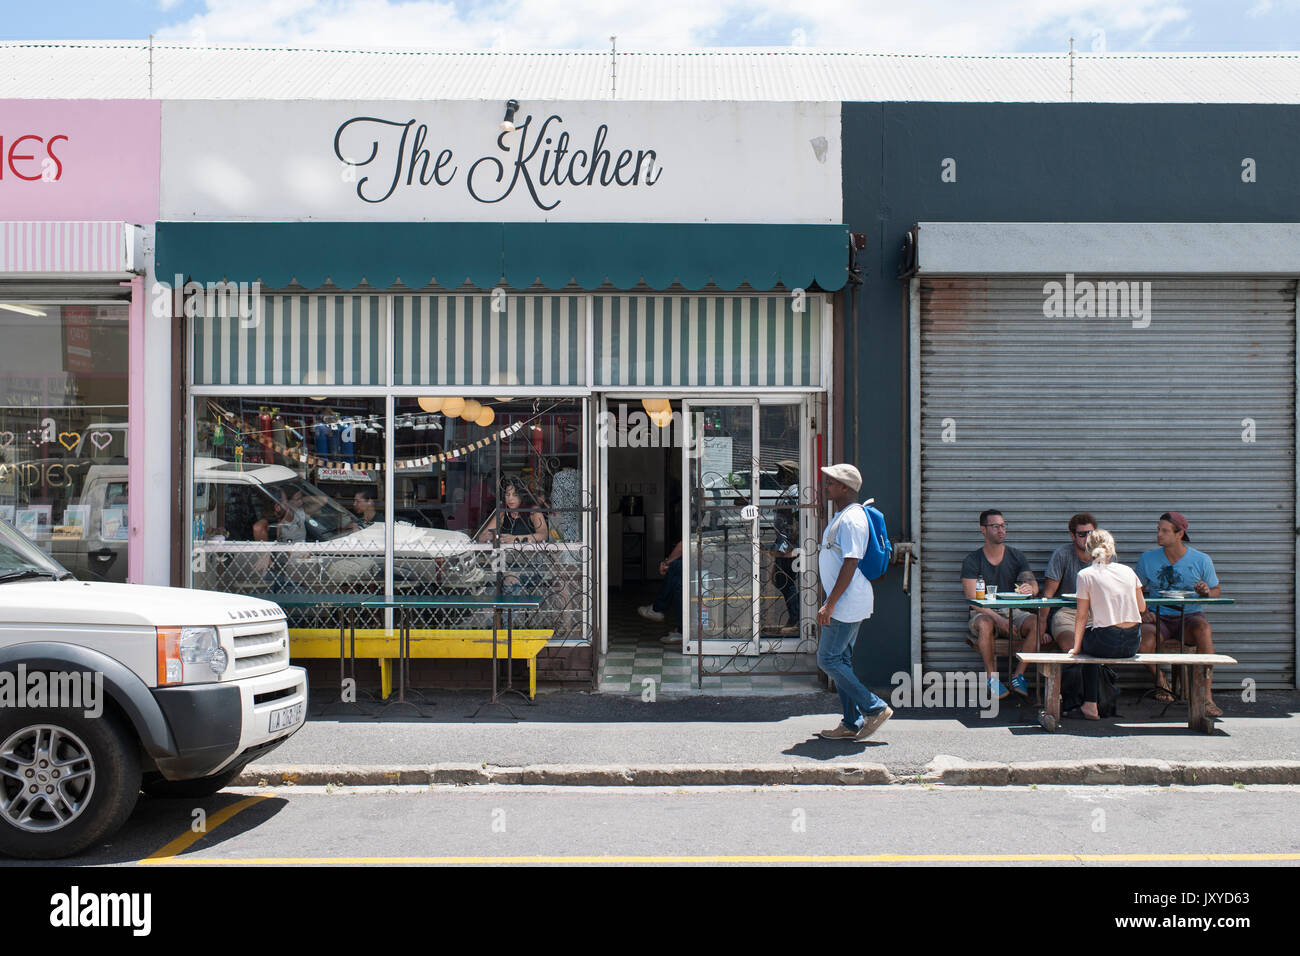 The Kitchen cafe & takeaway in Woodstock, Cape Town. - Stock Image